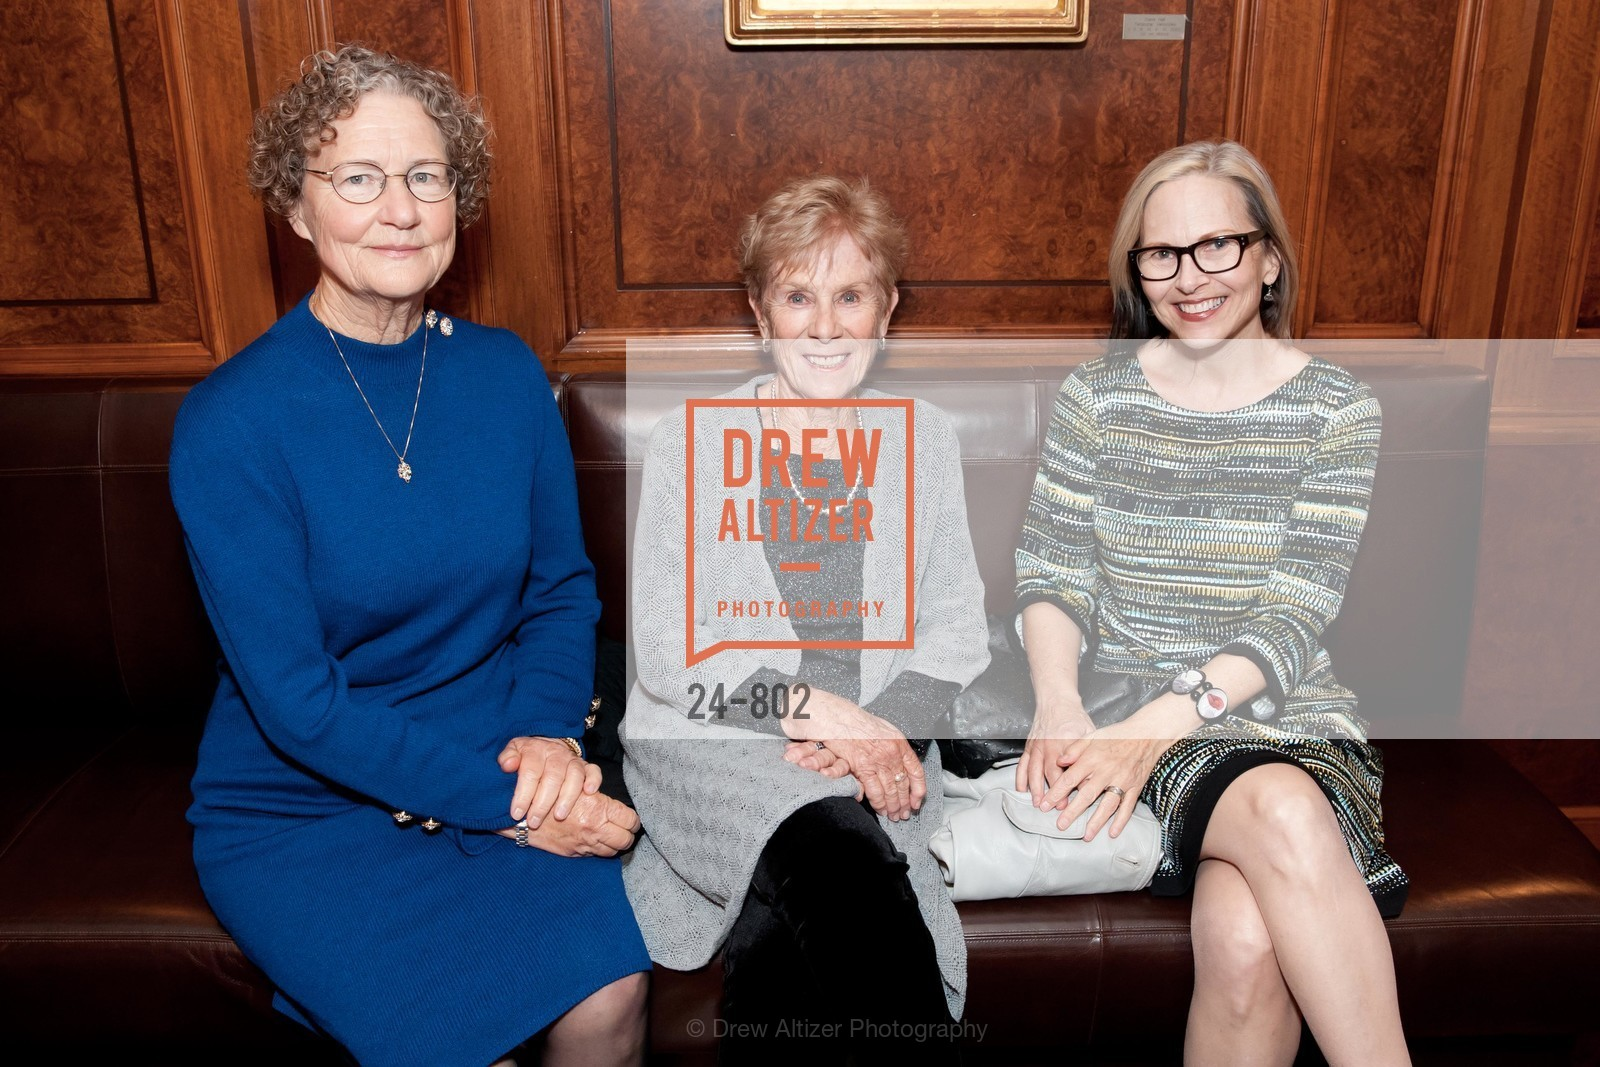 Diane Hinds, Mary Ann Garvey, Joan Yokom, MR PORTER Celebrate The San Francisco Issue of The Journal, US, April 24th, 2015,Drew Altizer, Drew Altizer Photography, full-service agency, private events, San Francisco photographer, photographer california